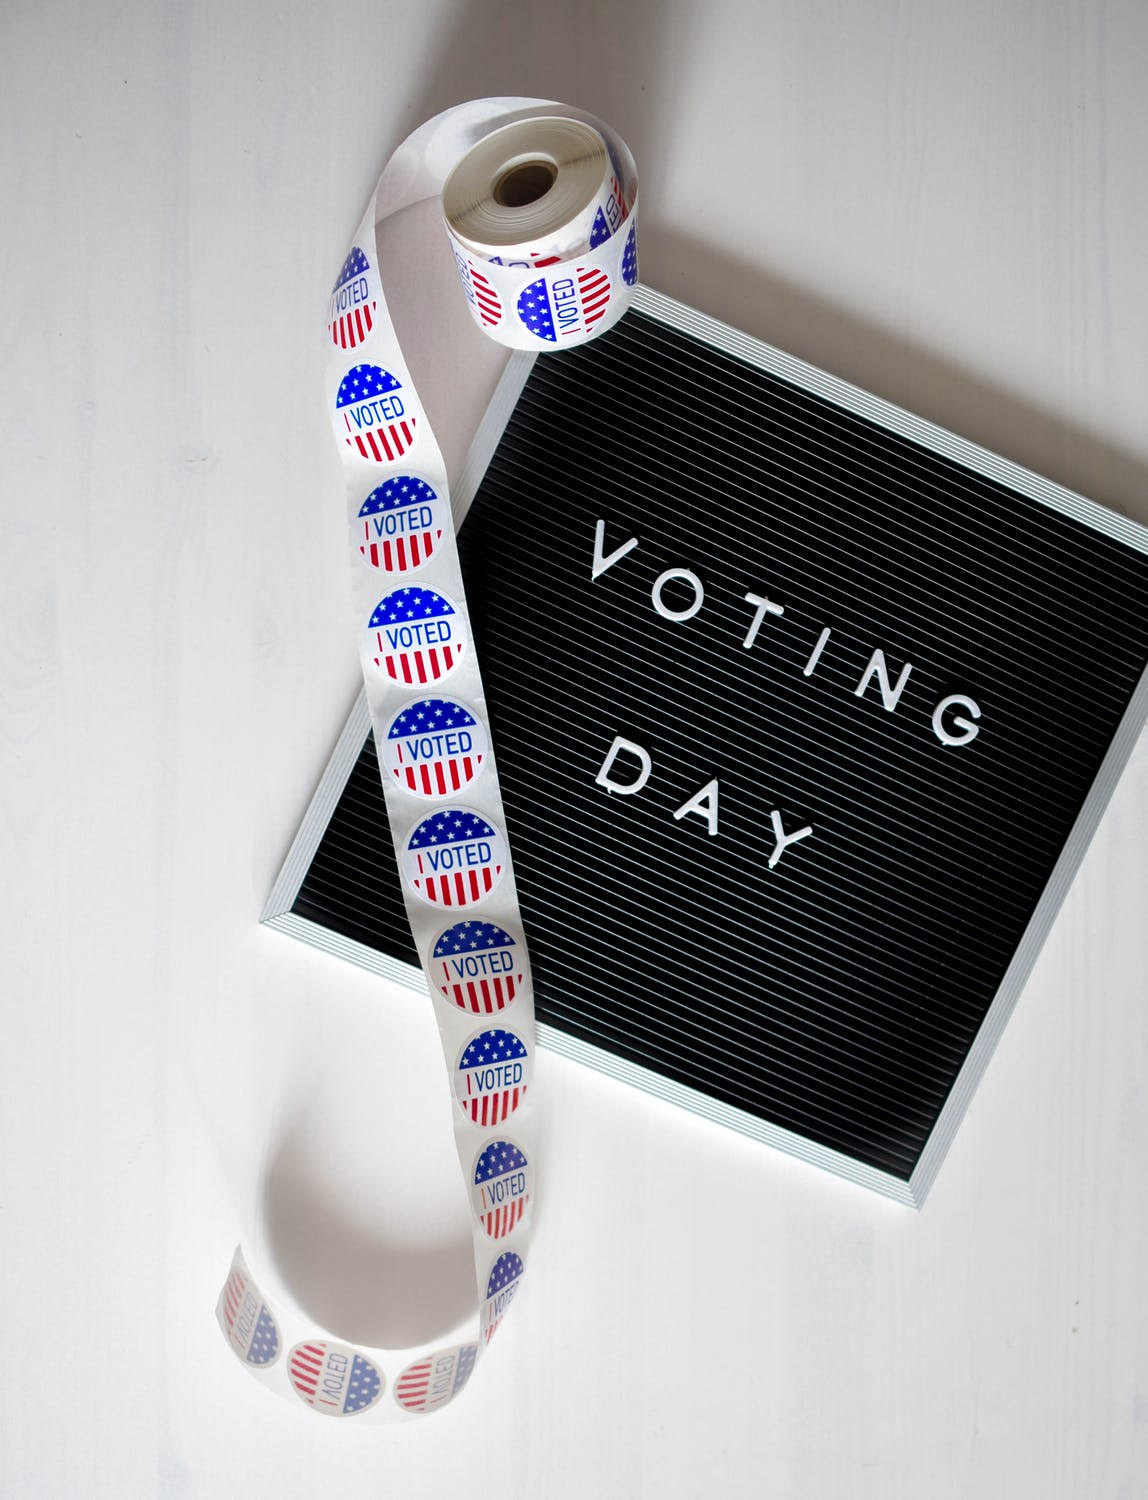 election day image - sign